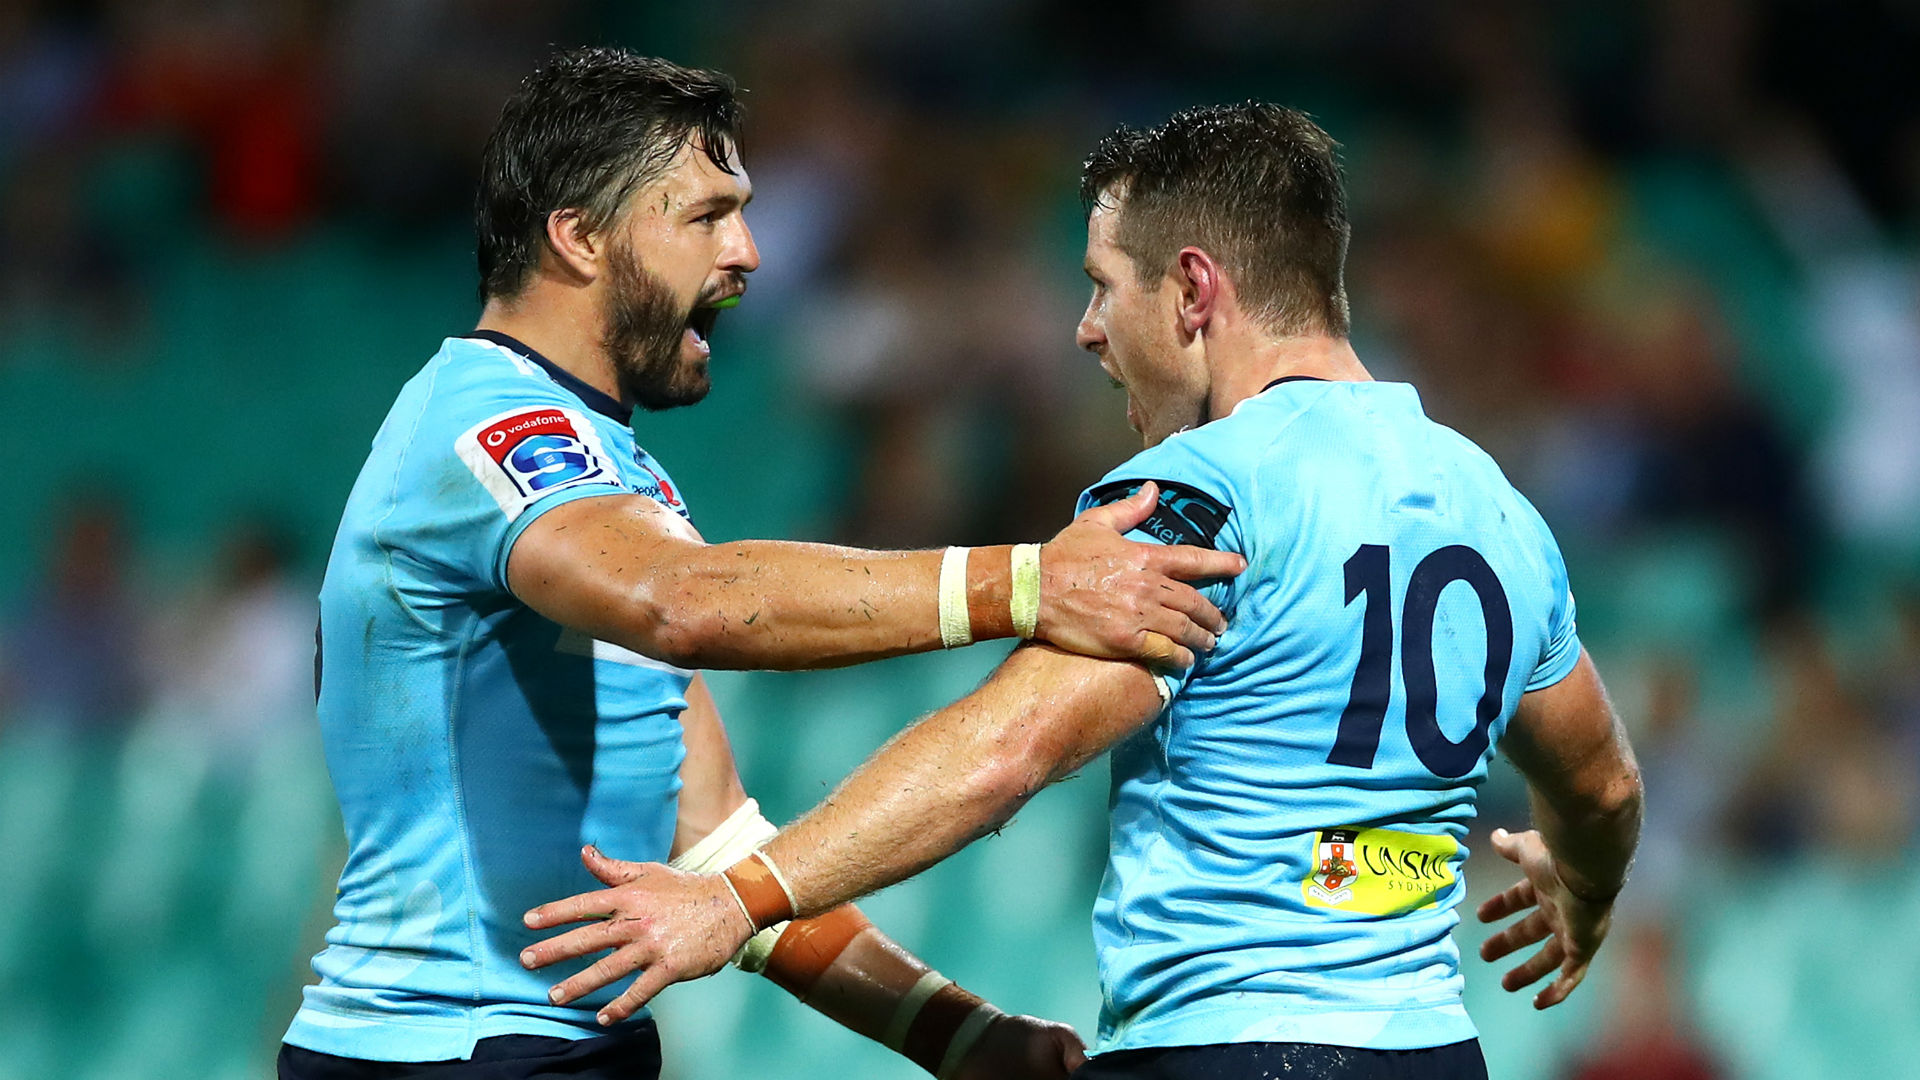 Kurtley Beale started at full-back in place of Israel Folau and the Waratahs showed great spirit to overcome the Rebels at the SCG.